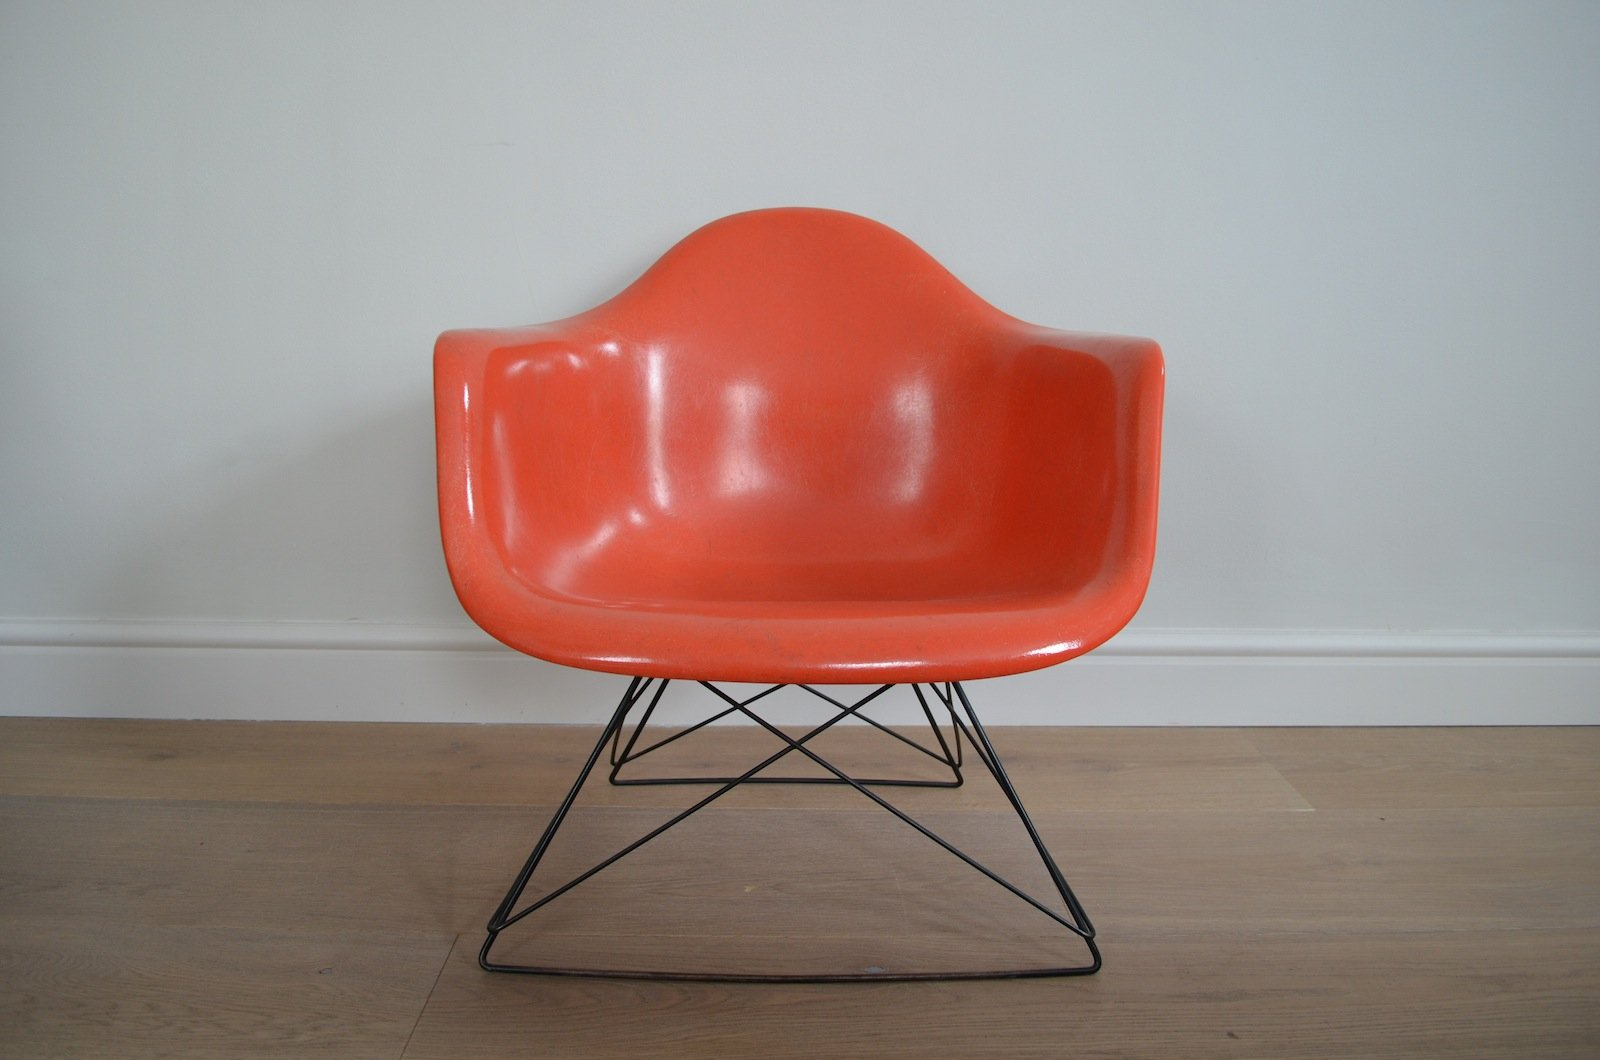 ray eames furniture. lar chair by charles u0026 ray eames for herman miller 1950 furniture